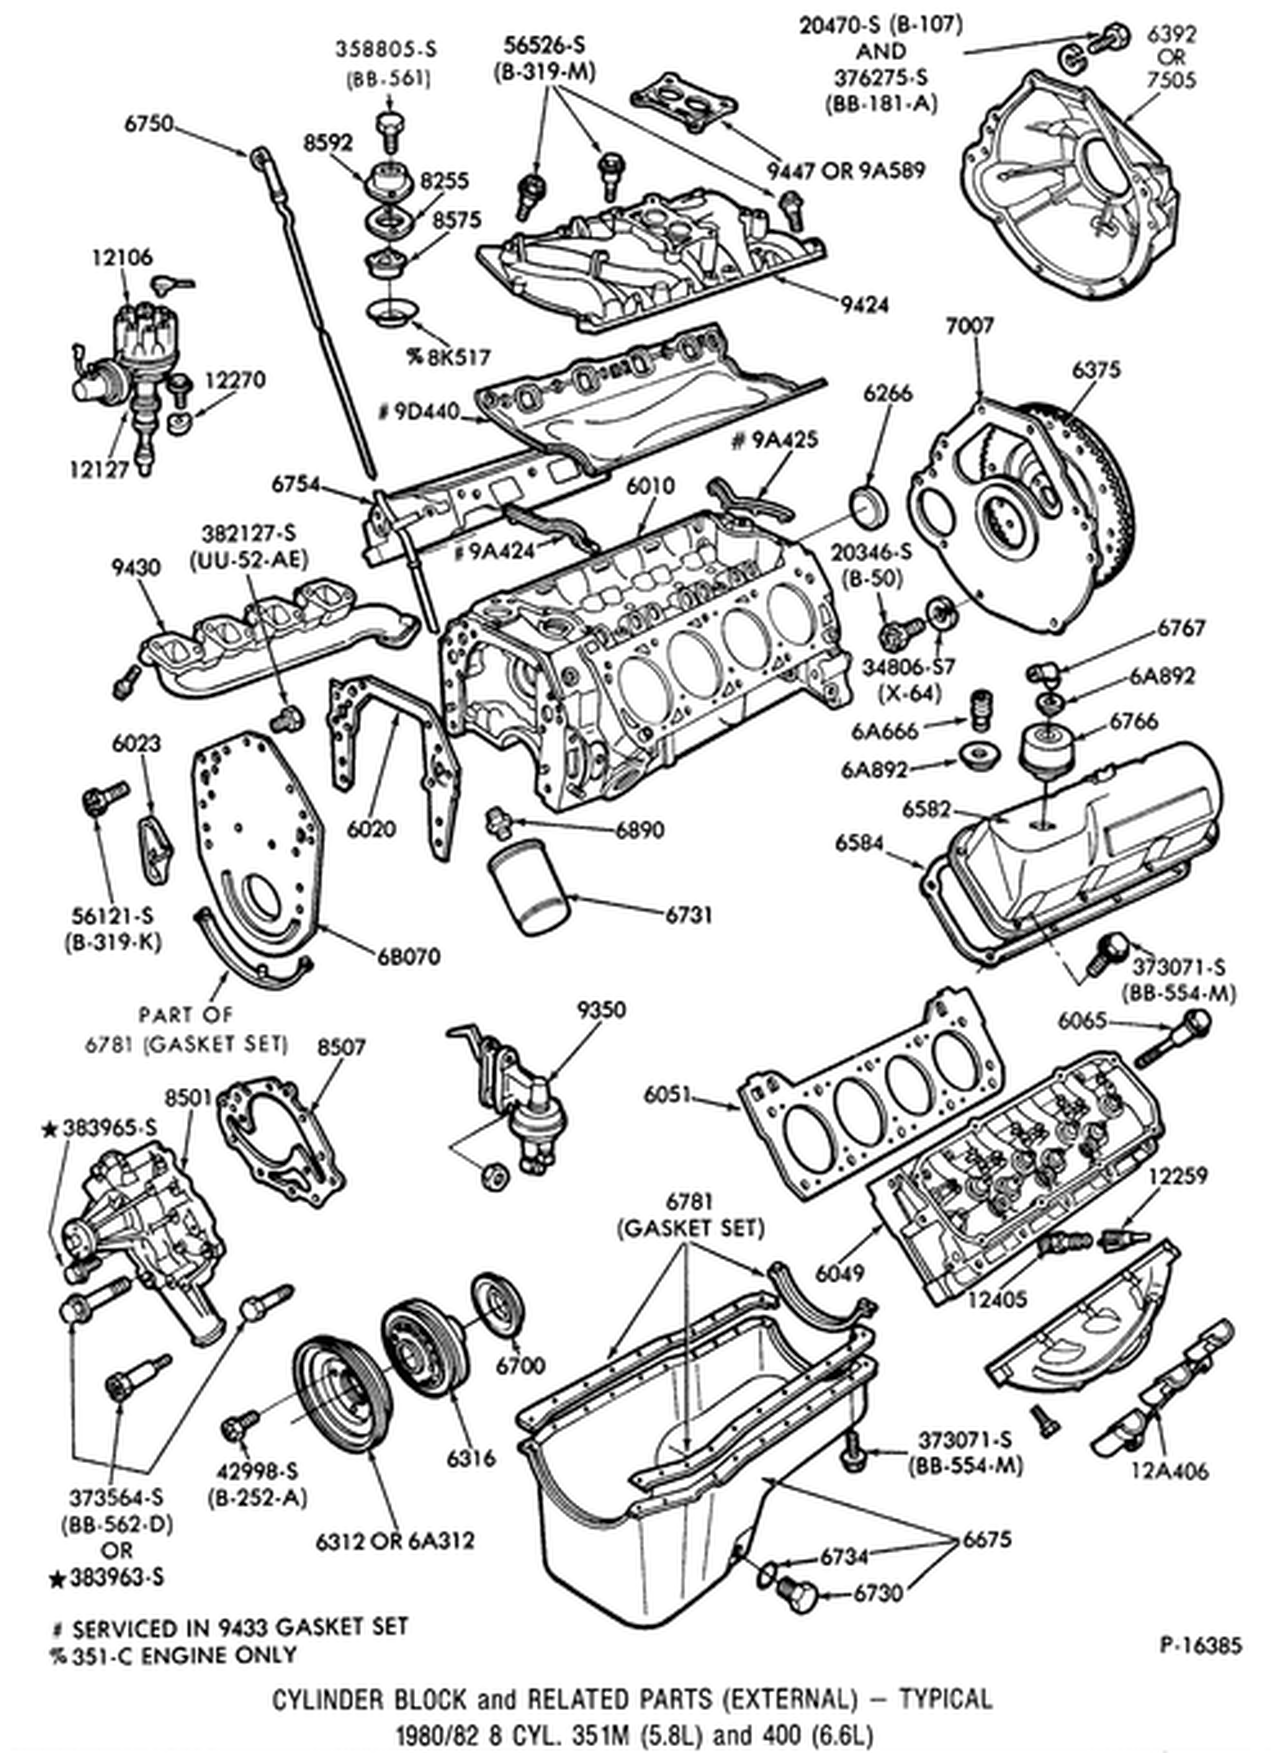 1978 Ford 400 Engine Diagram Wiring Diagram Conductor Direct Conductor Direct Carmenpellegrinelli It